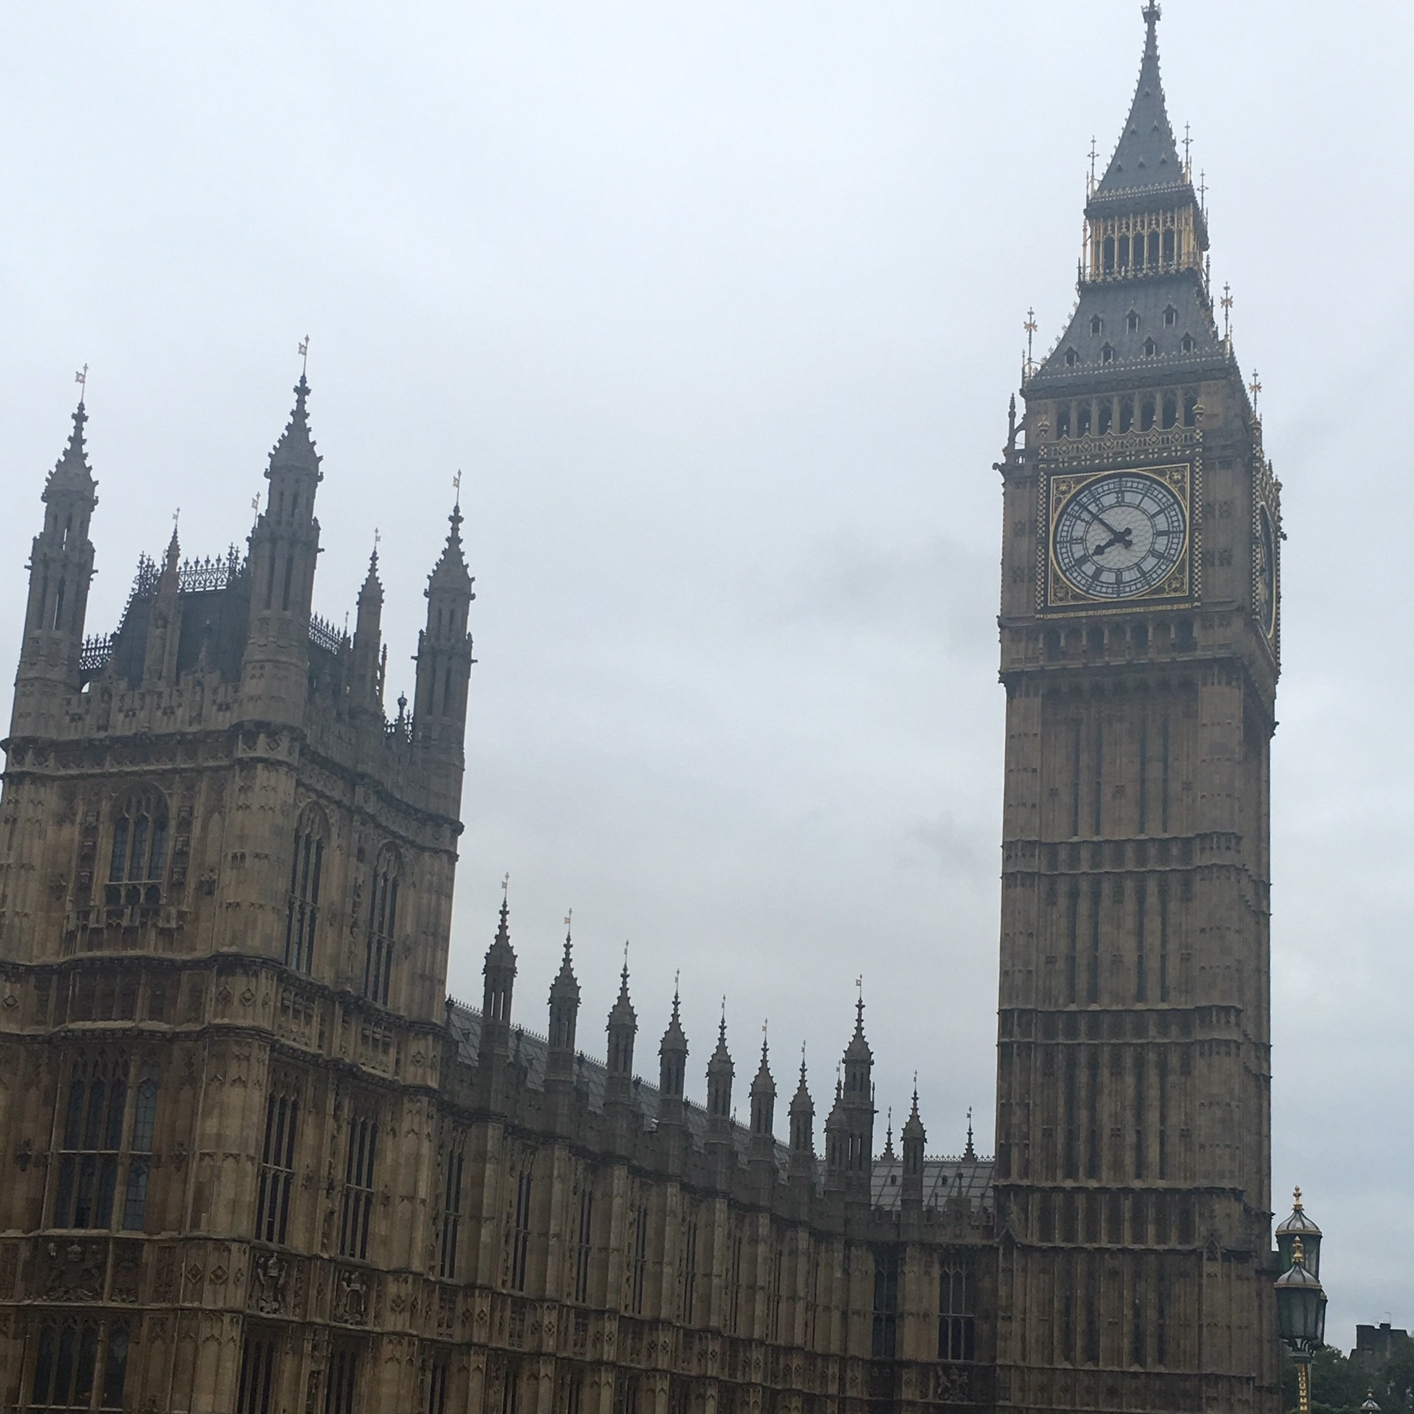 Parliament Buildings, London by The Doubtful Traveller